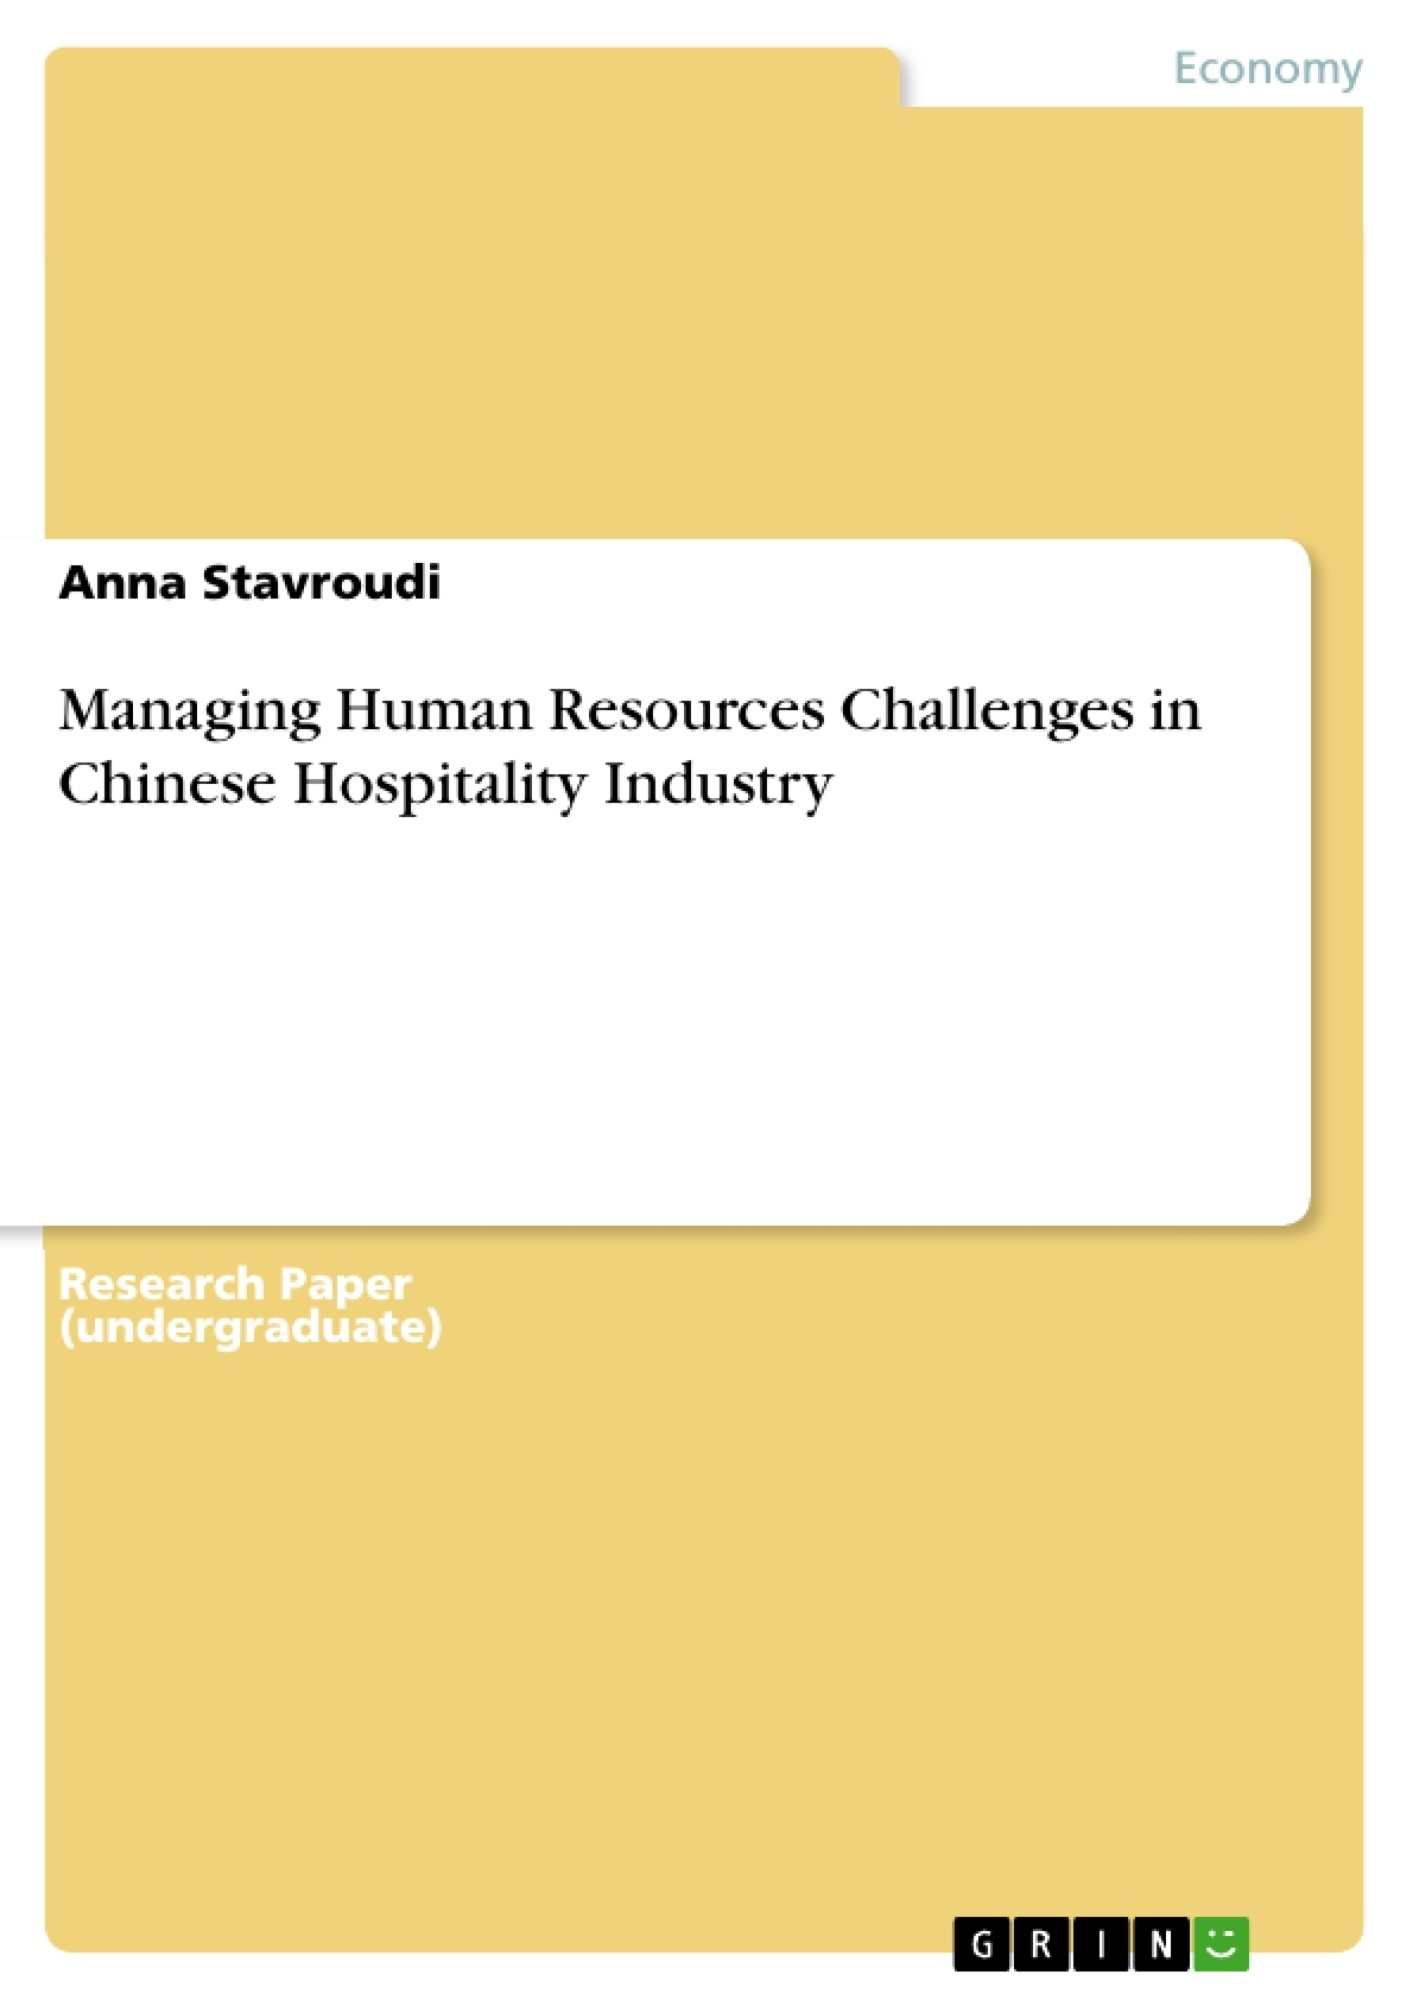 Title: Managing Human Resources Challenges in Chinese Hospitality Industry